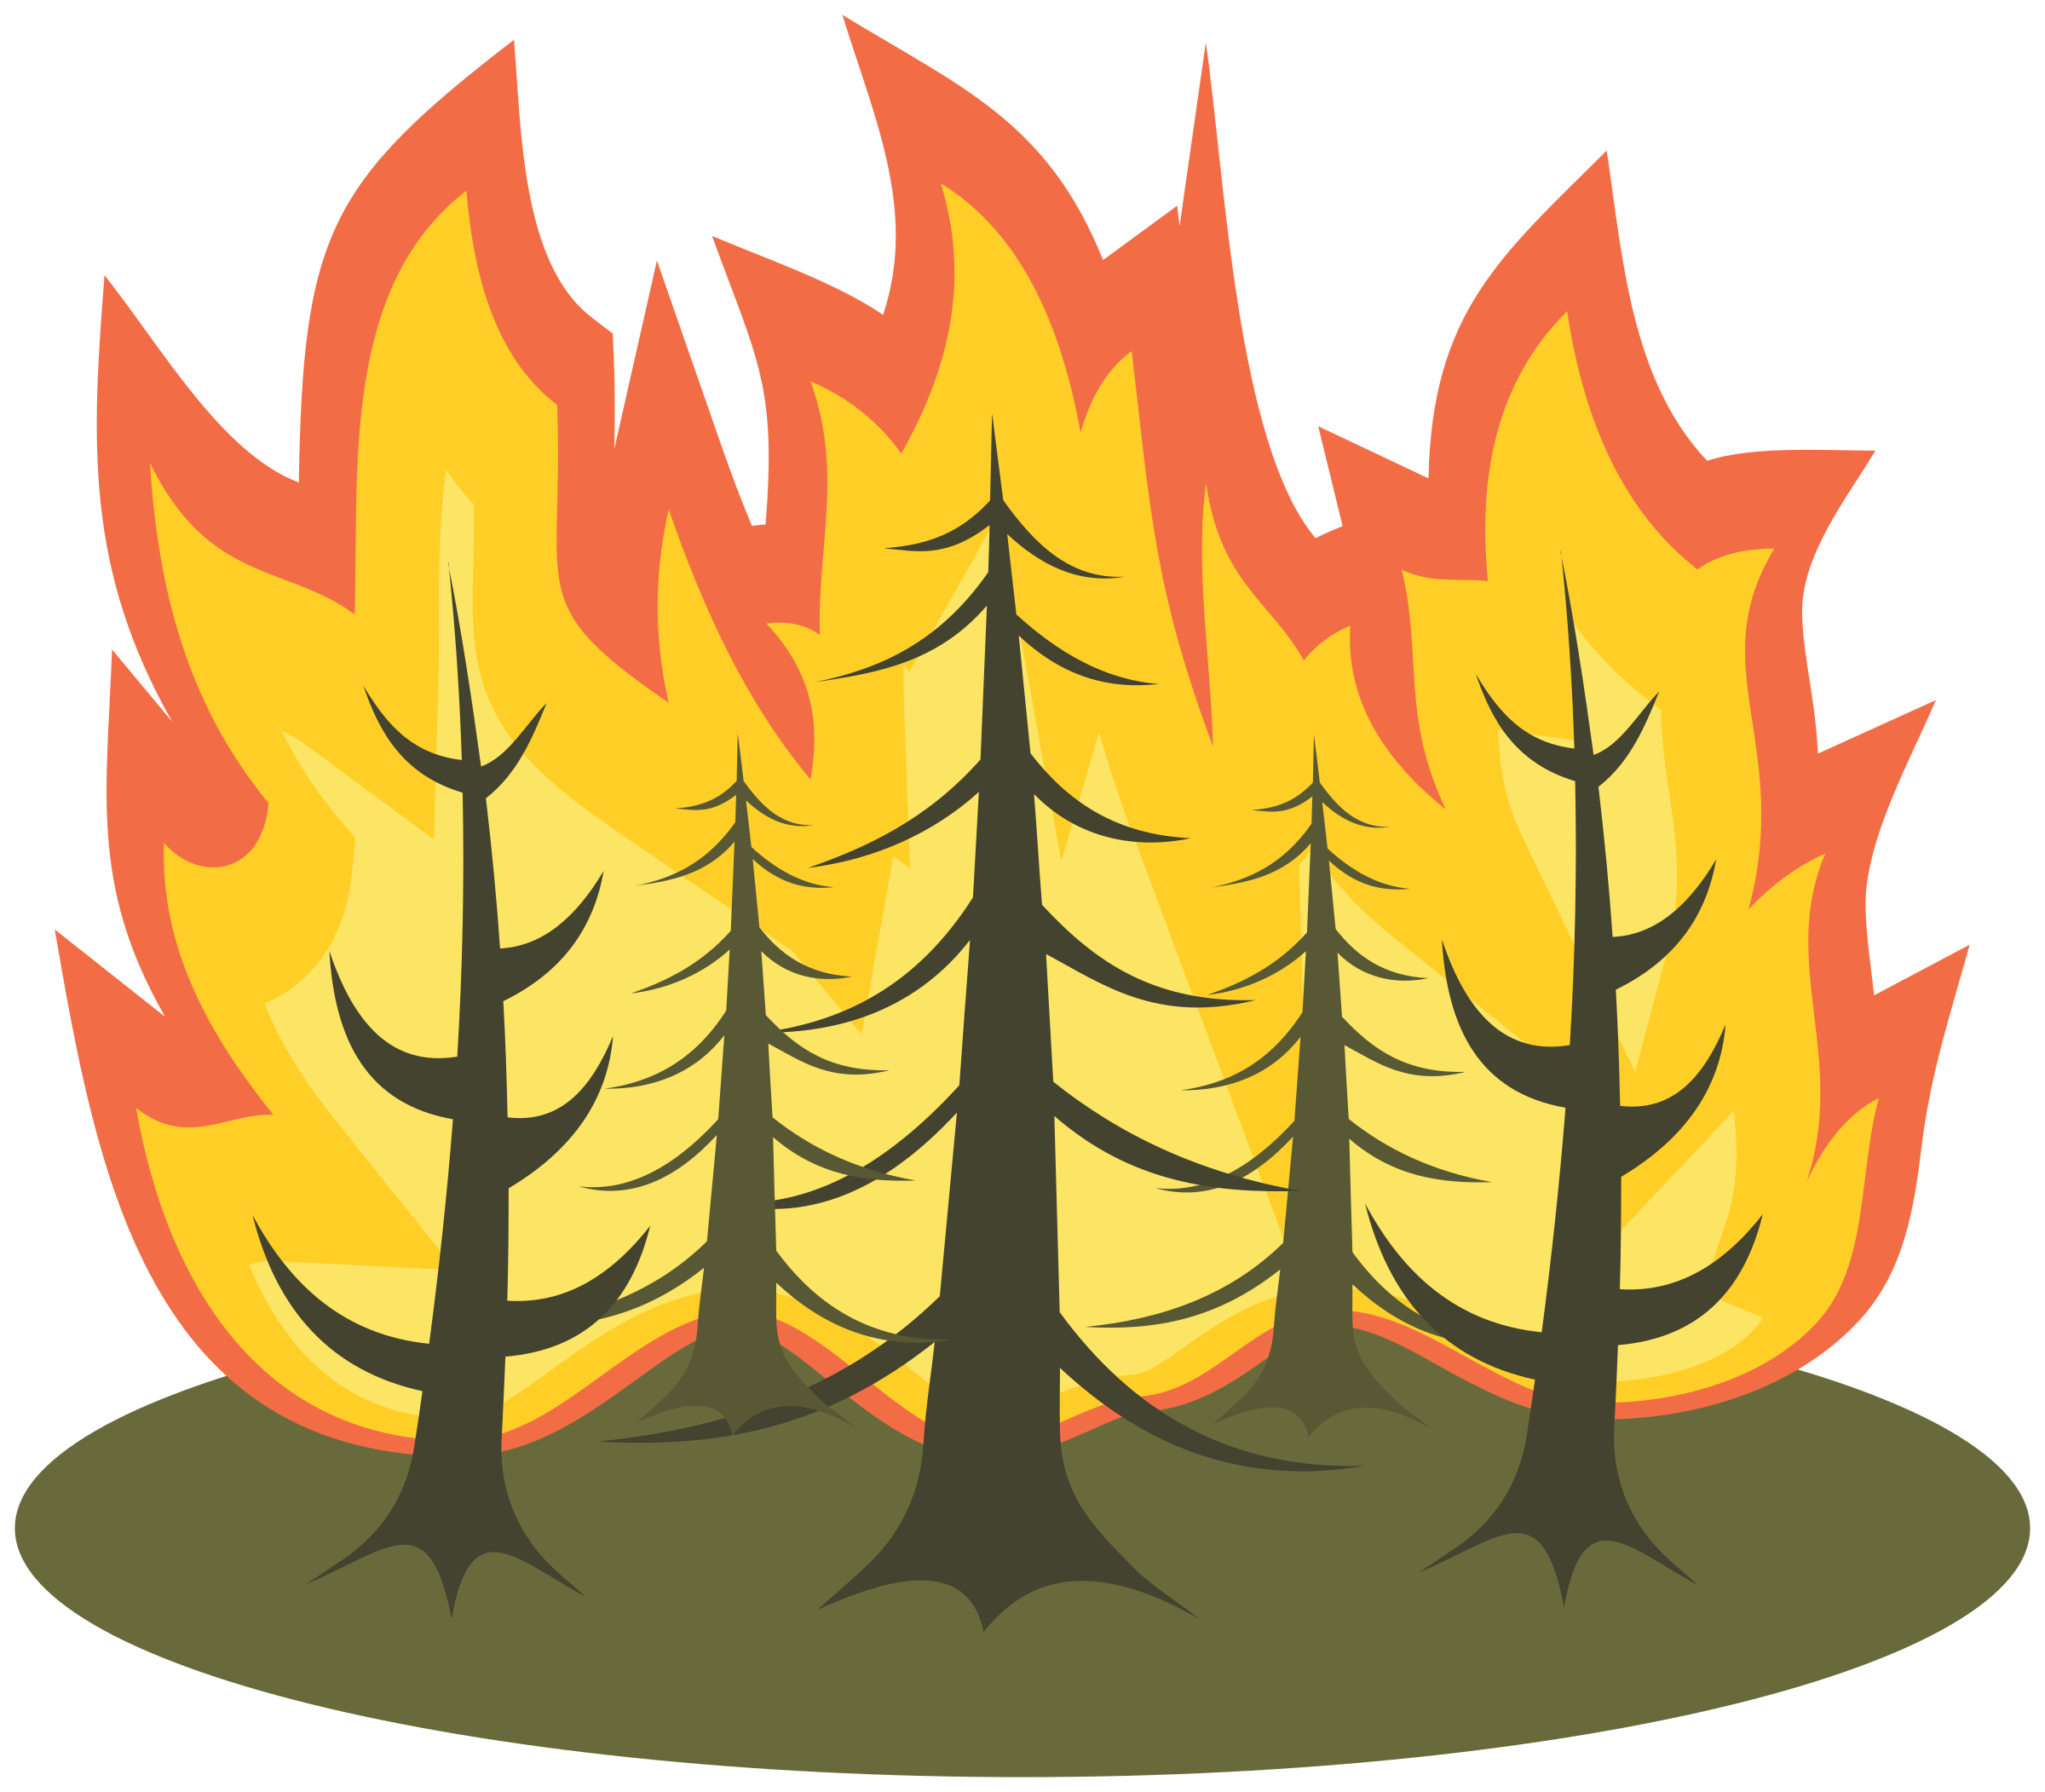 Fireplace clipart campfire. Forest fire group